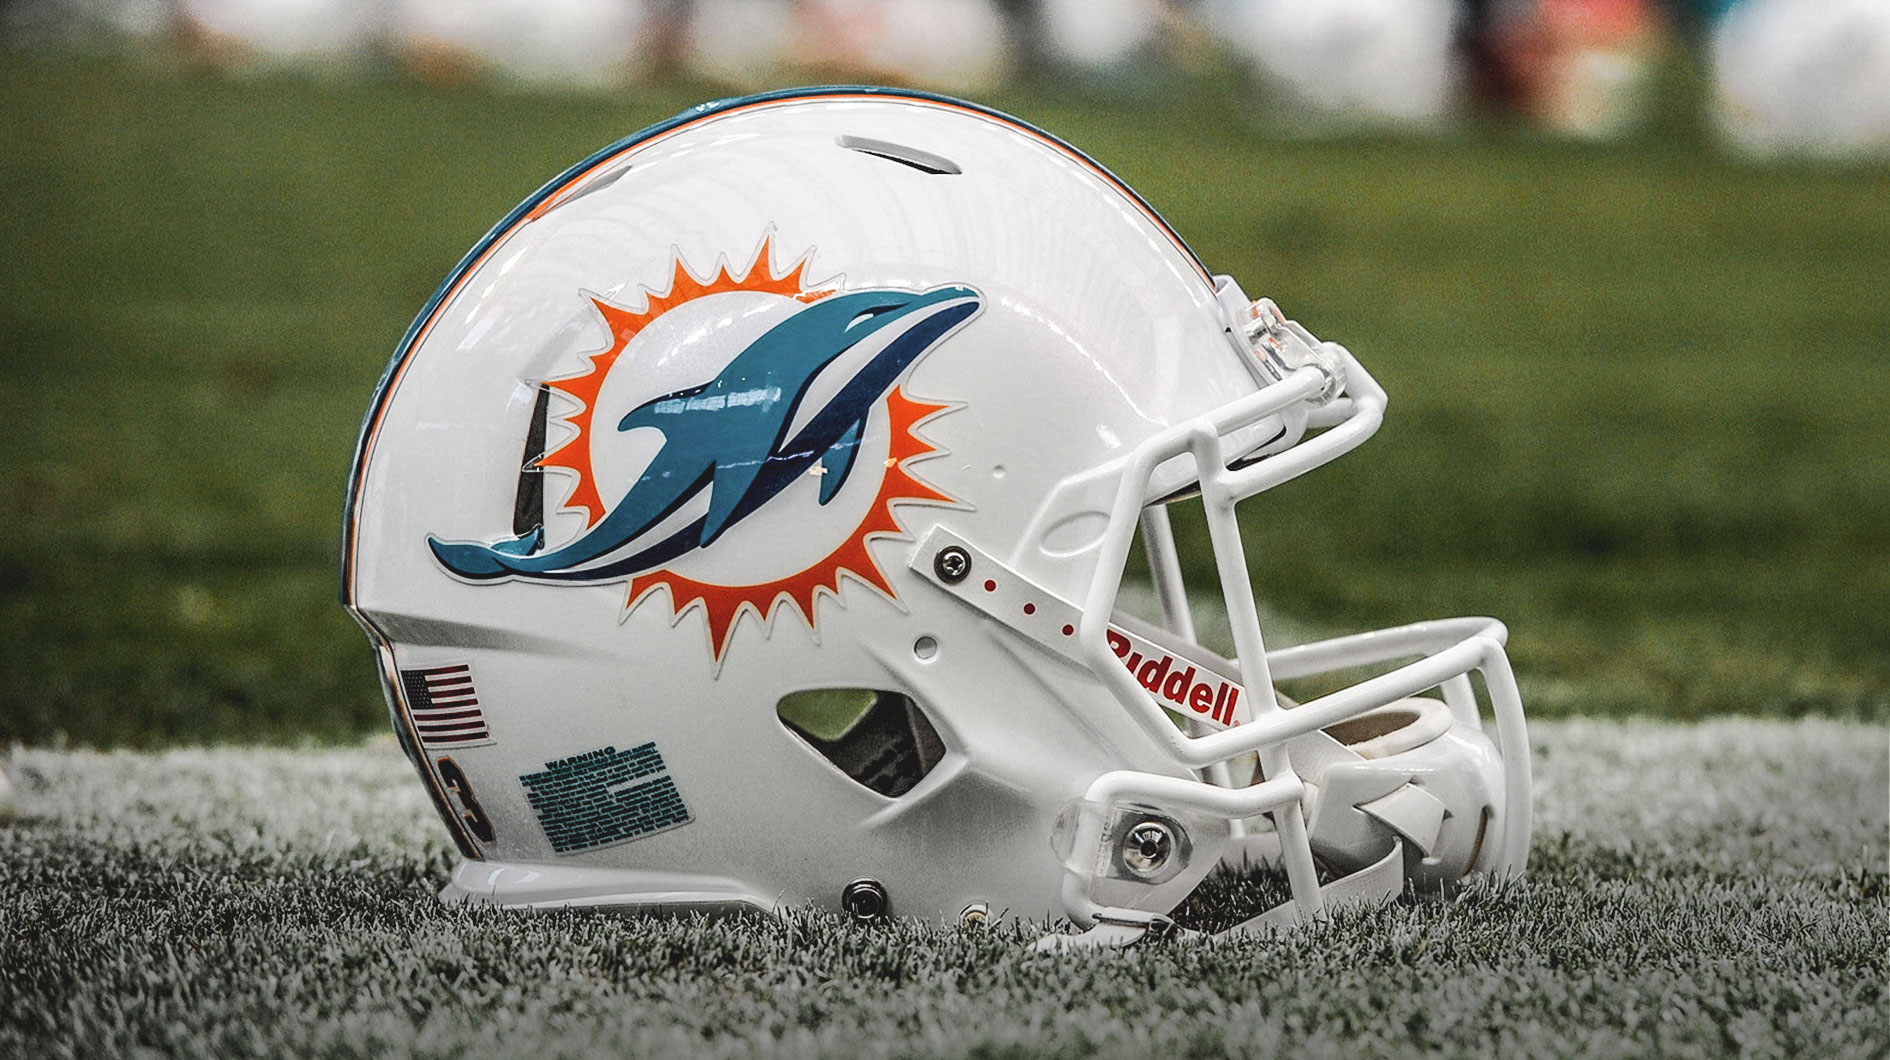 Odds On Who Is Going To Score More – The Miami Dolphin Offense Or Dallas Defense?